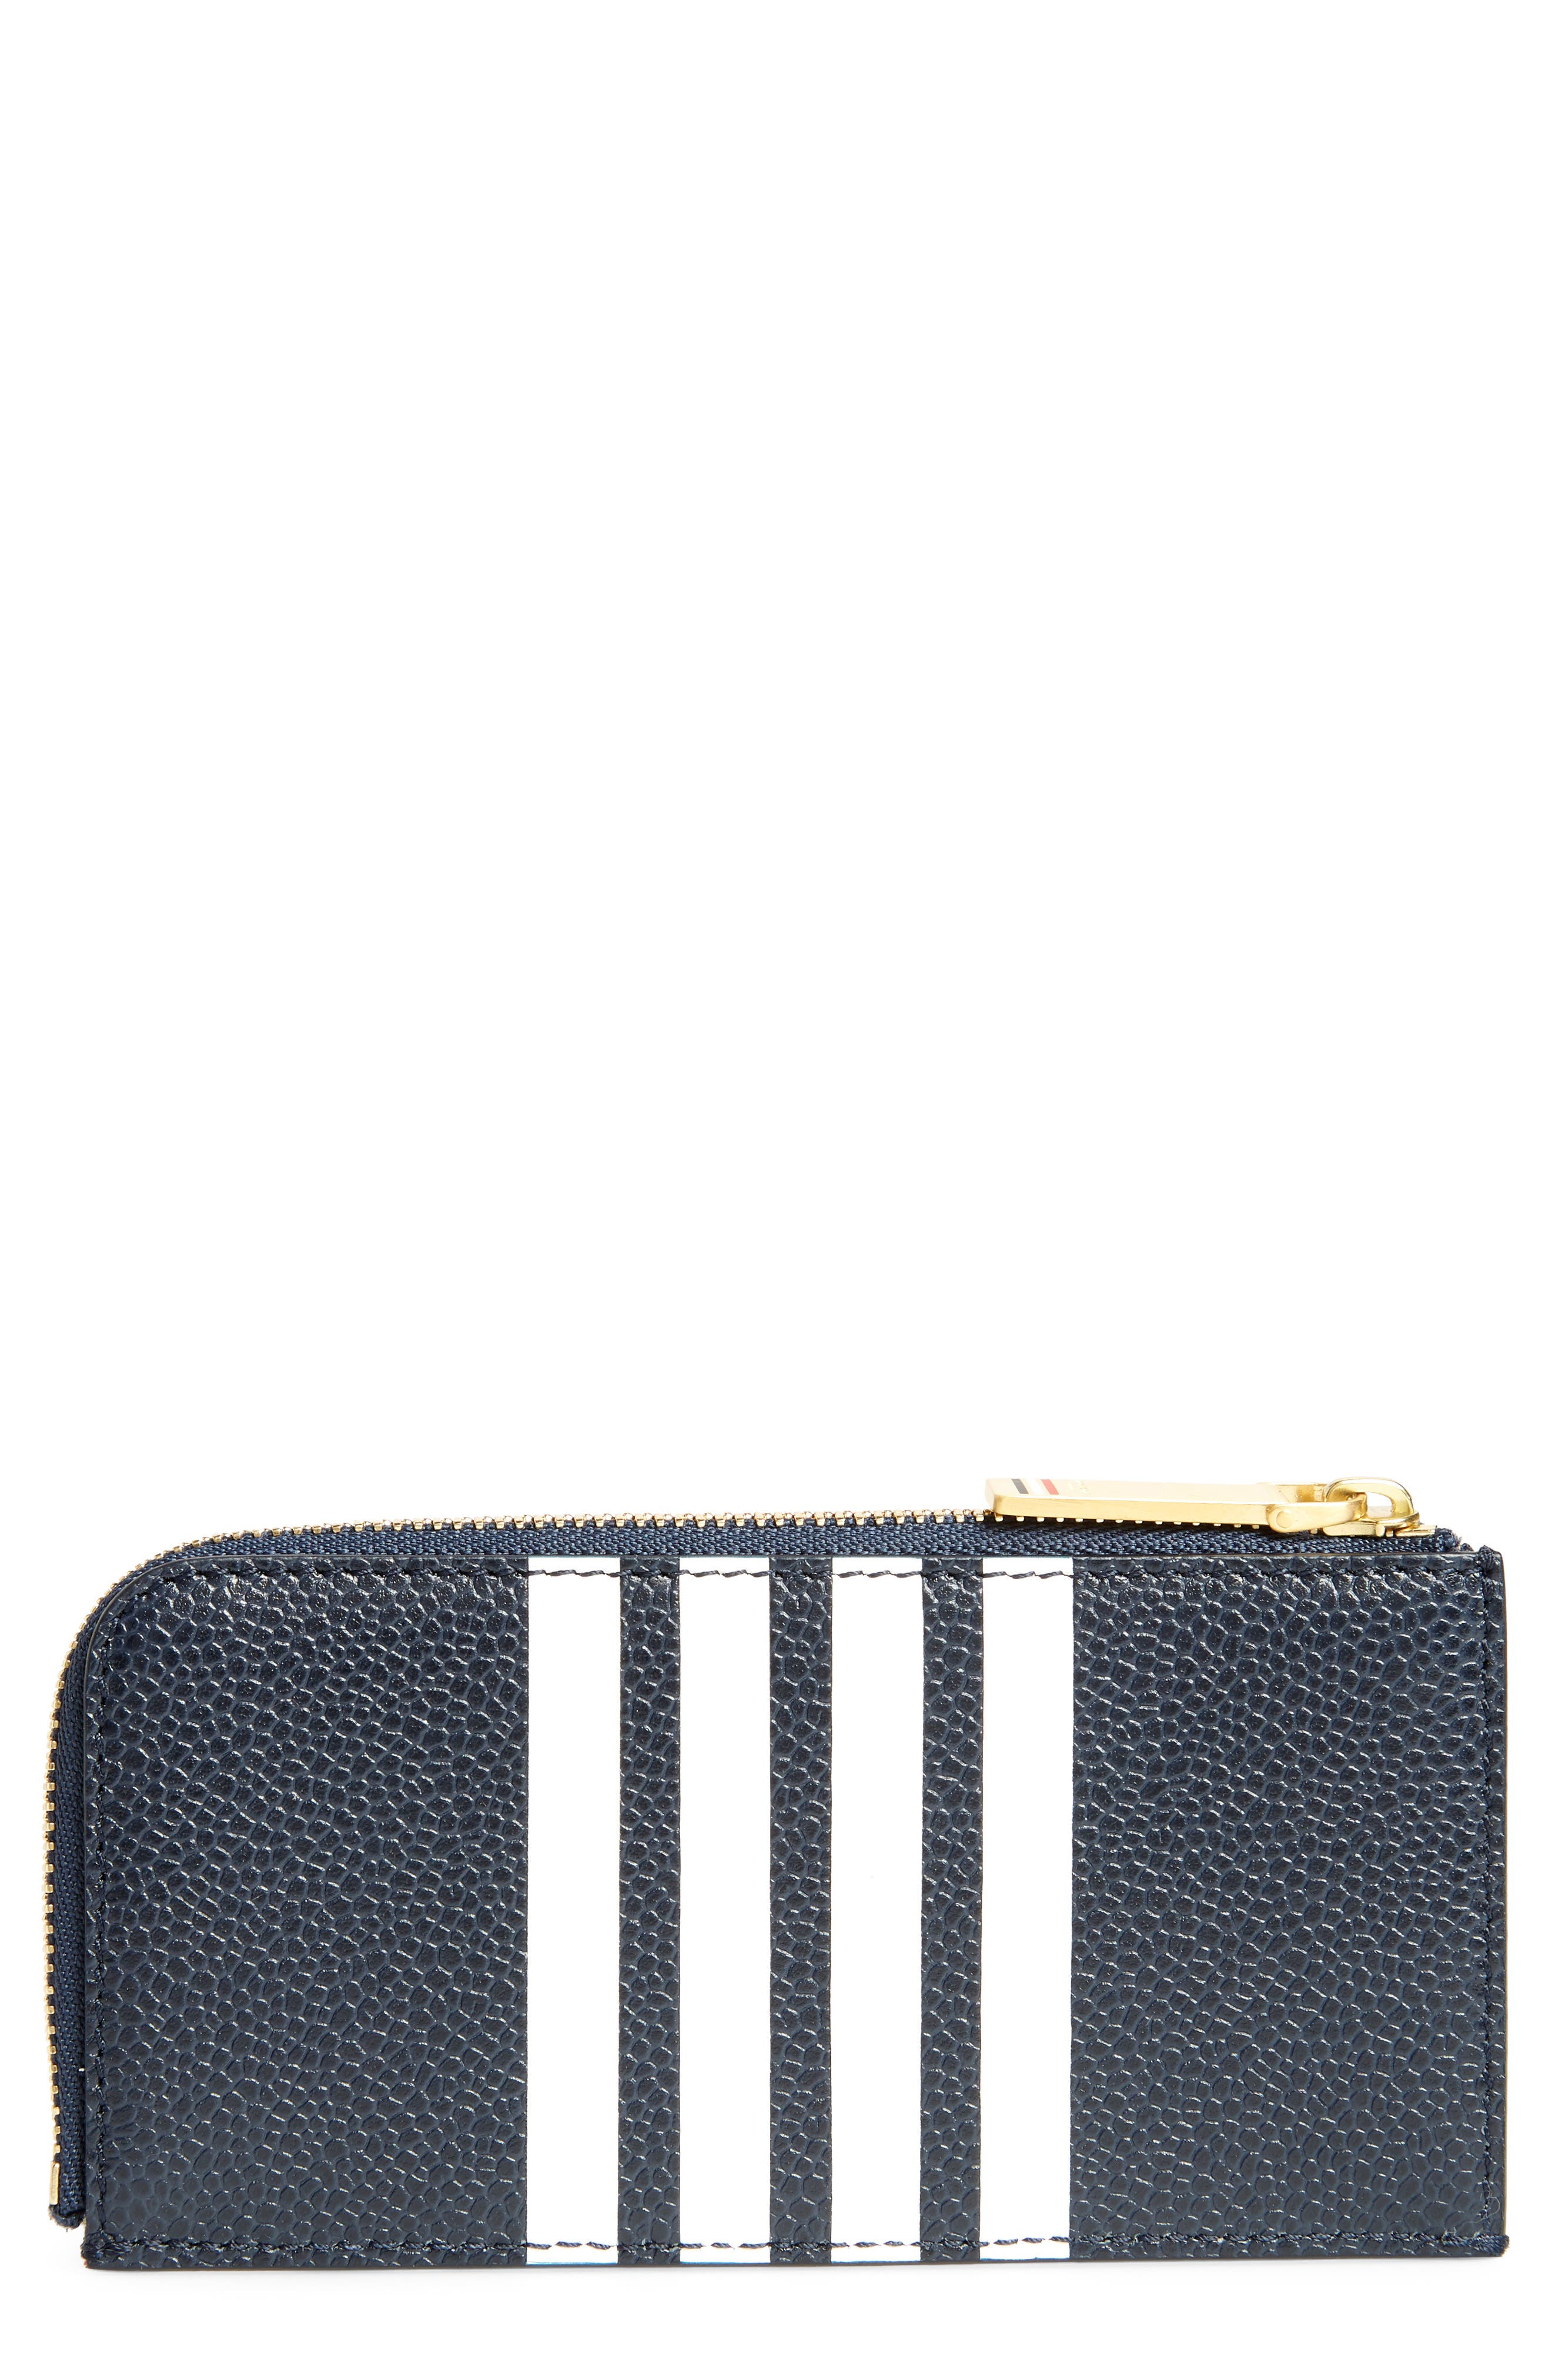 Alternate Image 1 Selected - Thom Browne Zip Card Case